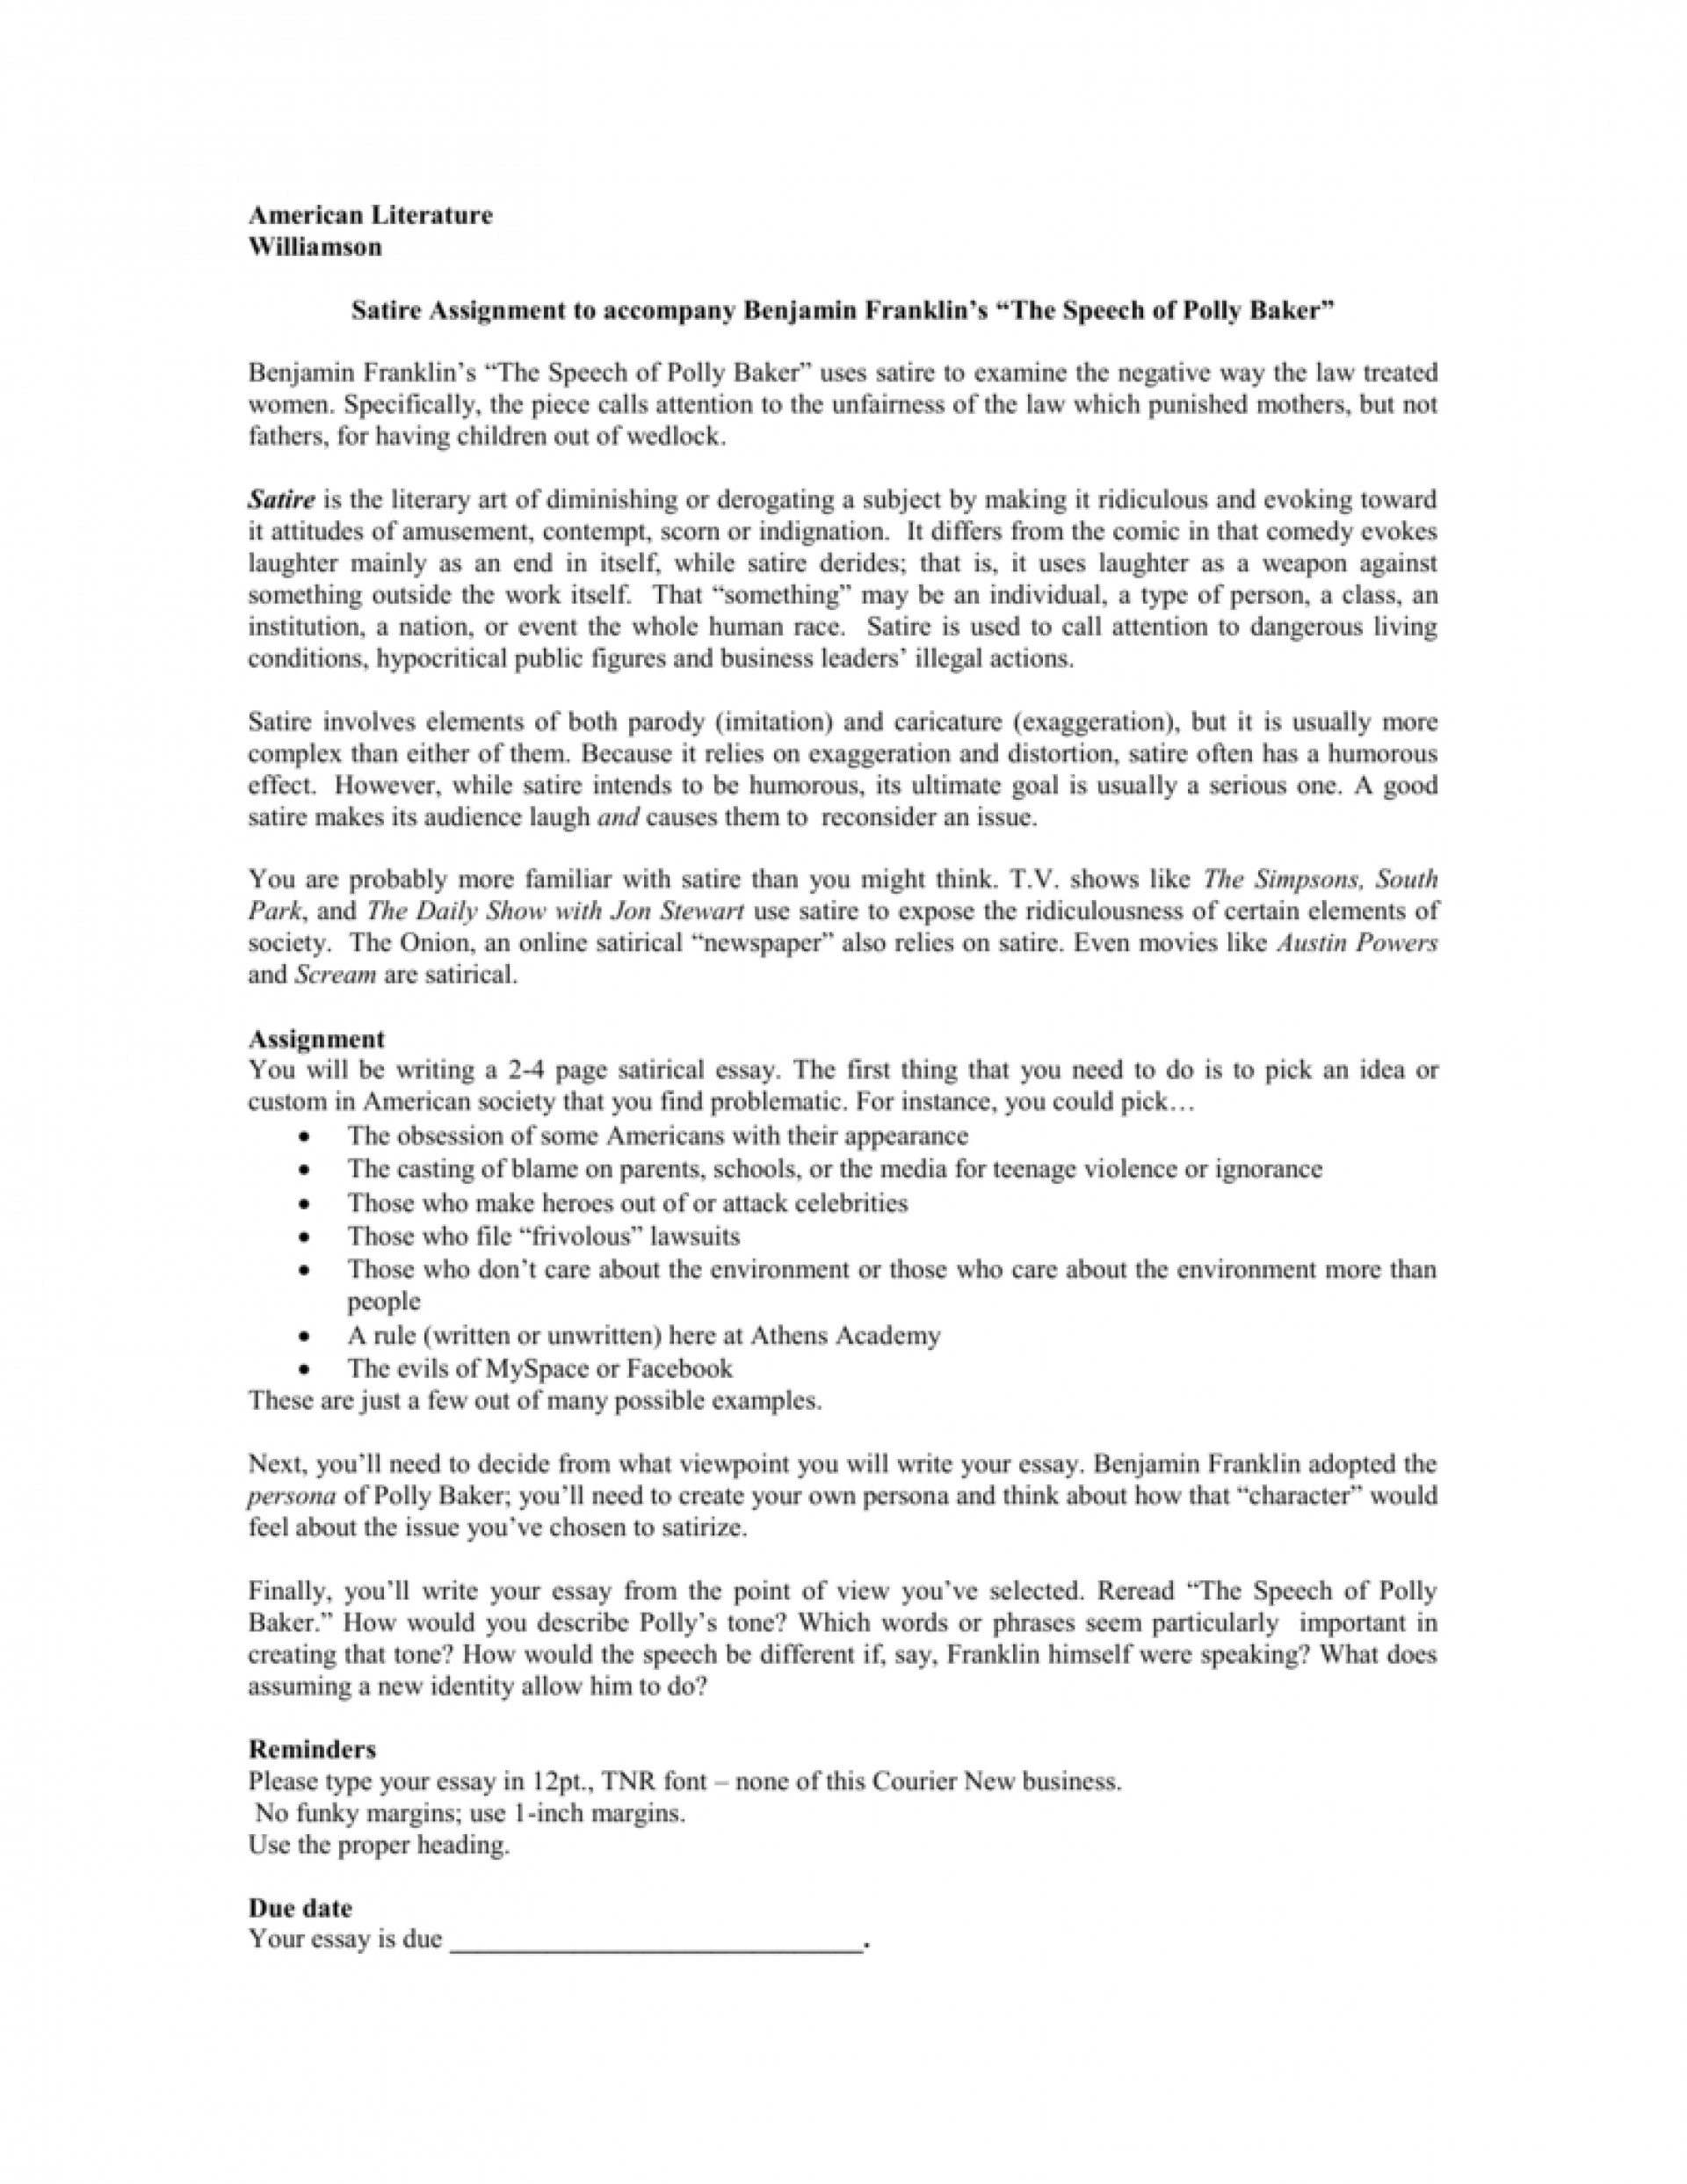 016 008005442 1 Essay Example How To Write Fascinating A Satire On Obesity Outline Essay-example 1920